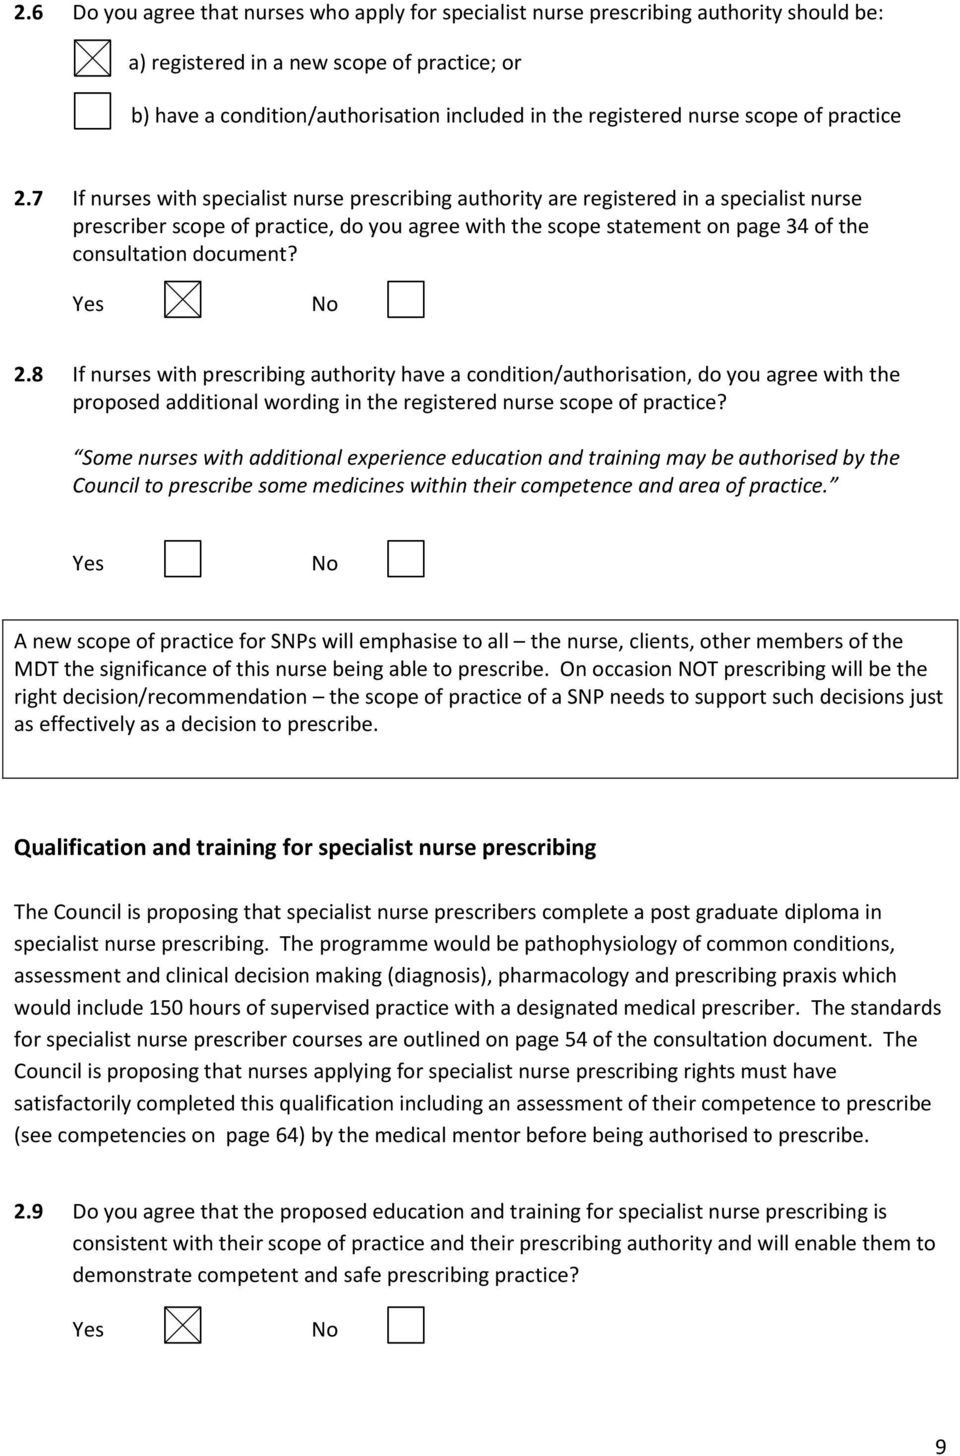 7 If nurses with specialist nurse prescribing authority are registered in a specialist nurse prescriber scope of practice, do you agree with the scope statement on page 34 of the consultation